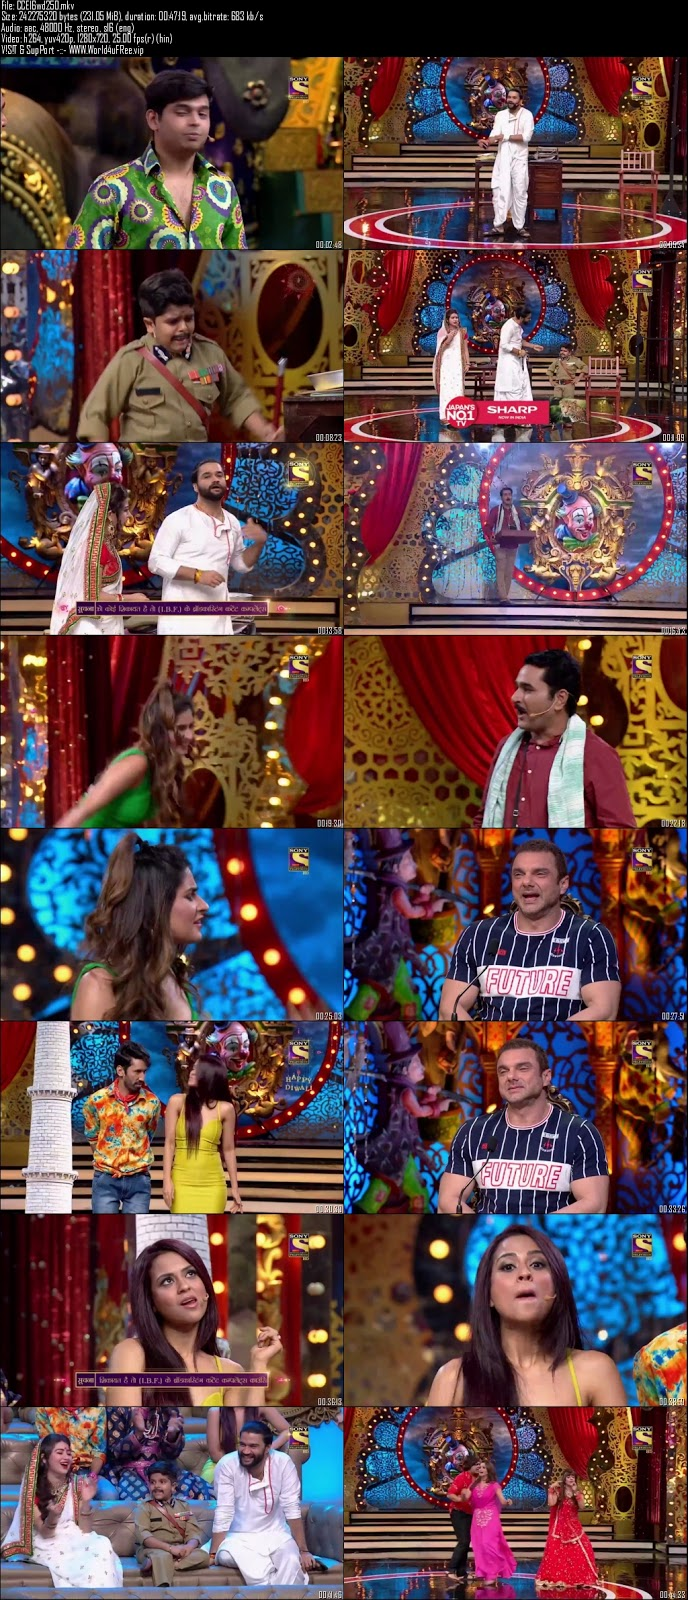 Comedy Circus 2018 Episode 16 720p WEBRip 250mb x264 world4ufree.vip tv show Comedy Circus 2018 hindi tv show Comedy Circus 2018  Season 1 sony tv show compressed small size free download or watch online at world4ufree.vip